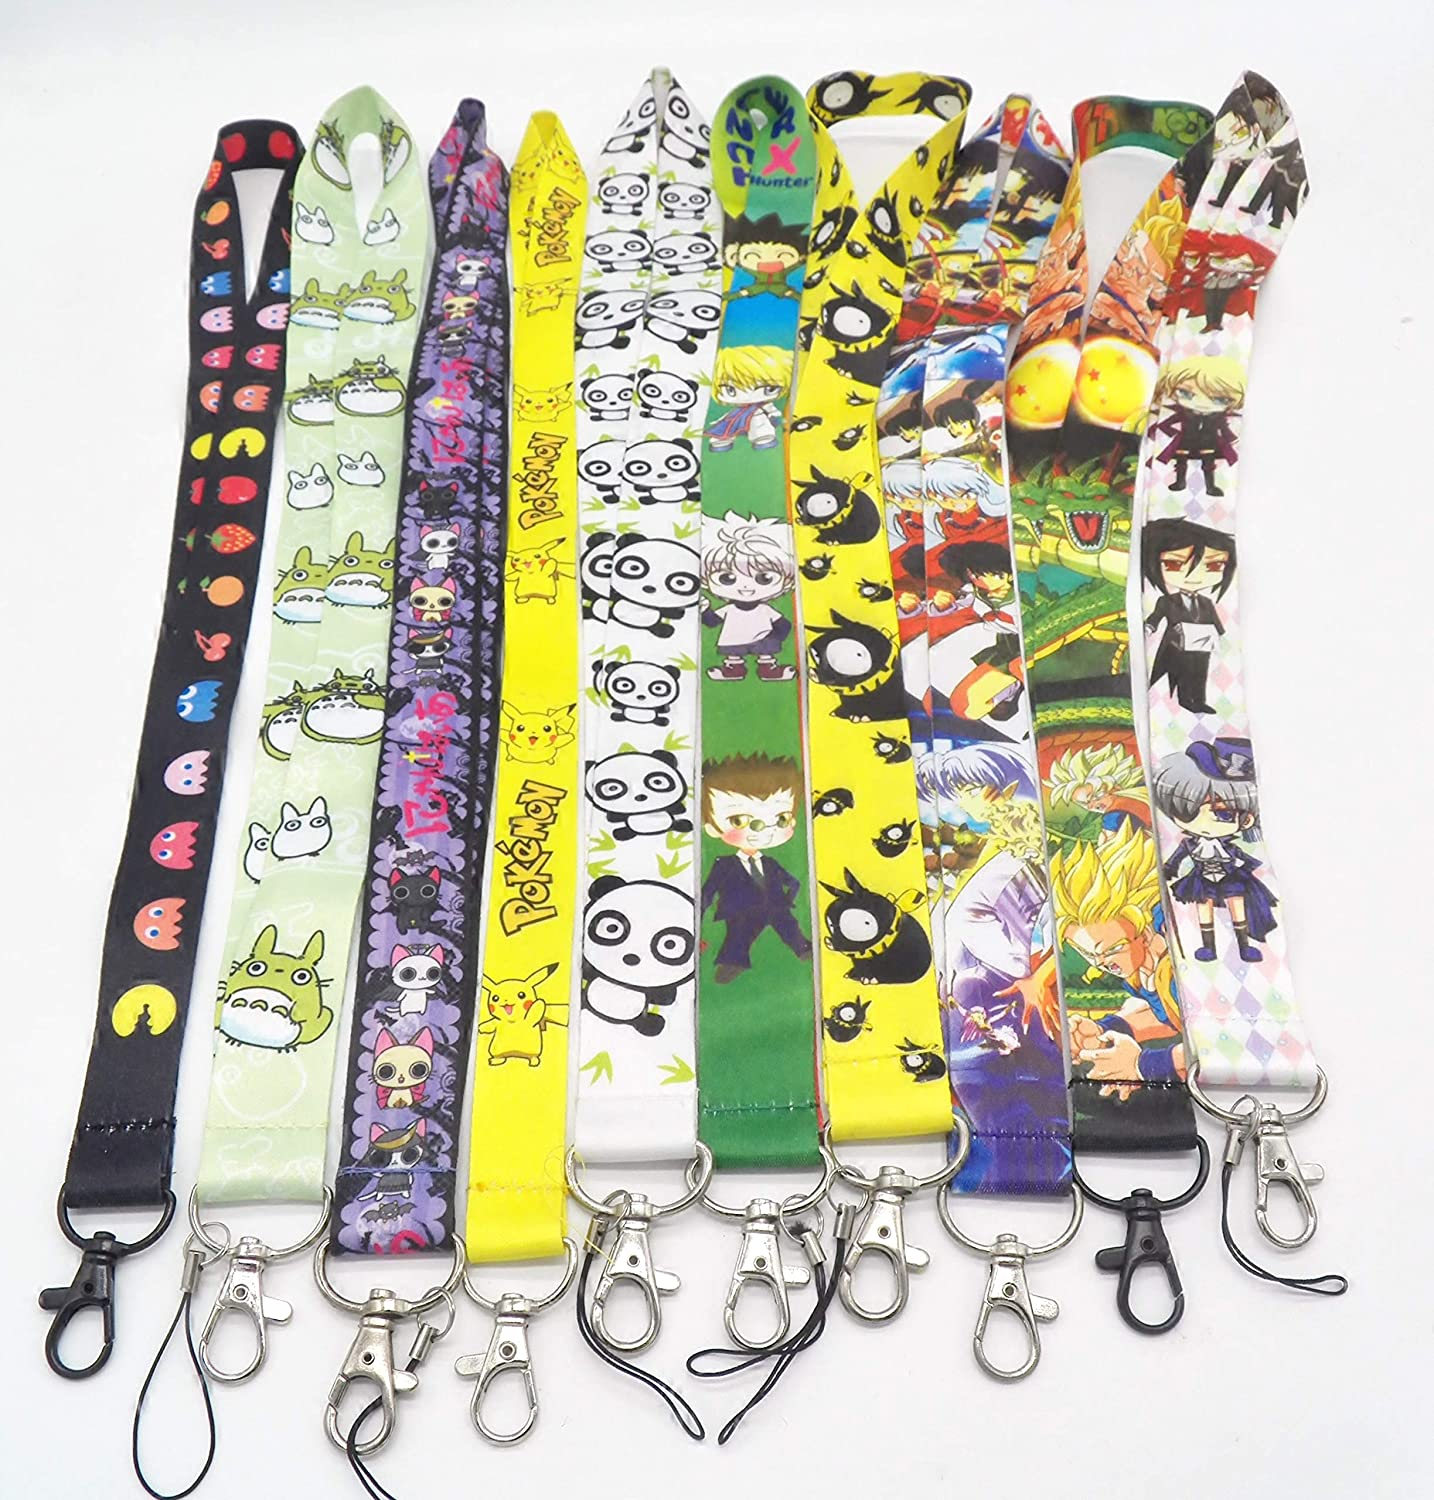 6 Assorted Anime Fullmetal Alchemist Black Butler Naruto Chain LANYARD Set #33